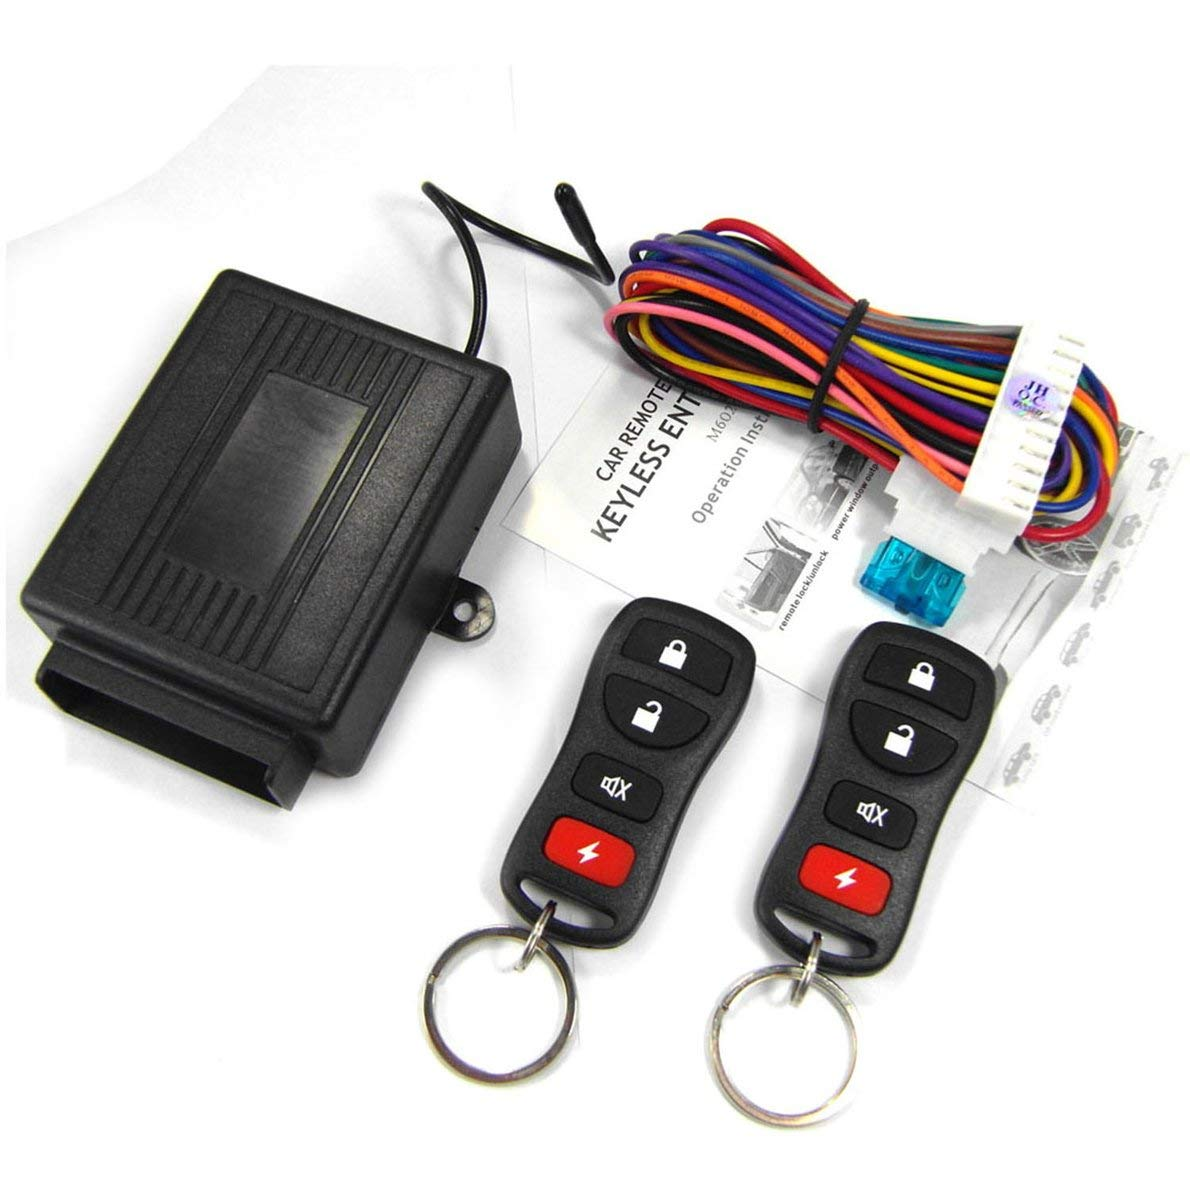 M602-8170 Remote Control Central Locking Kit for Nissan Car Door Lock Keyless Entry System with Trunk Release Button